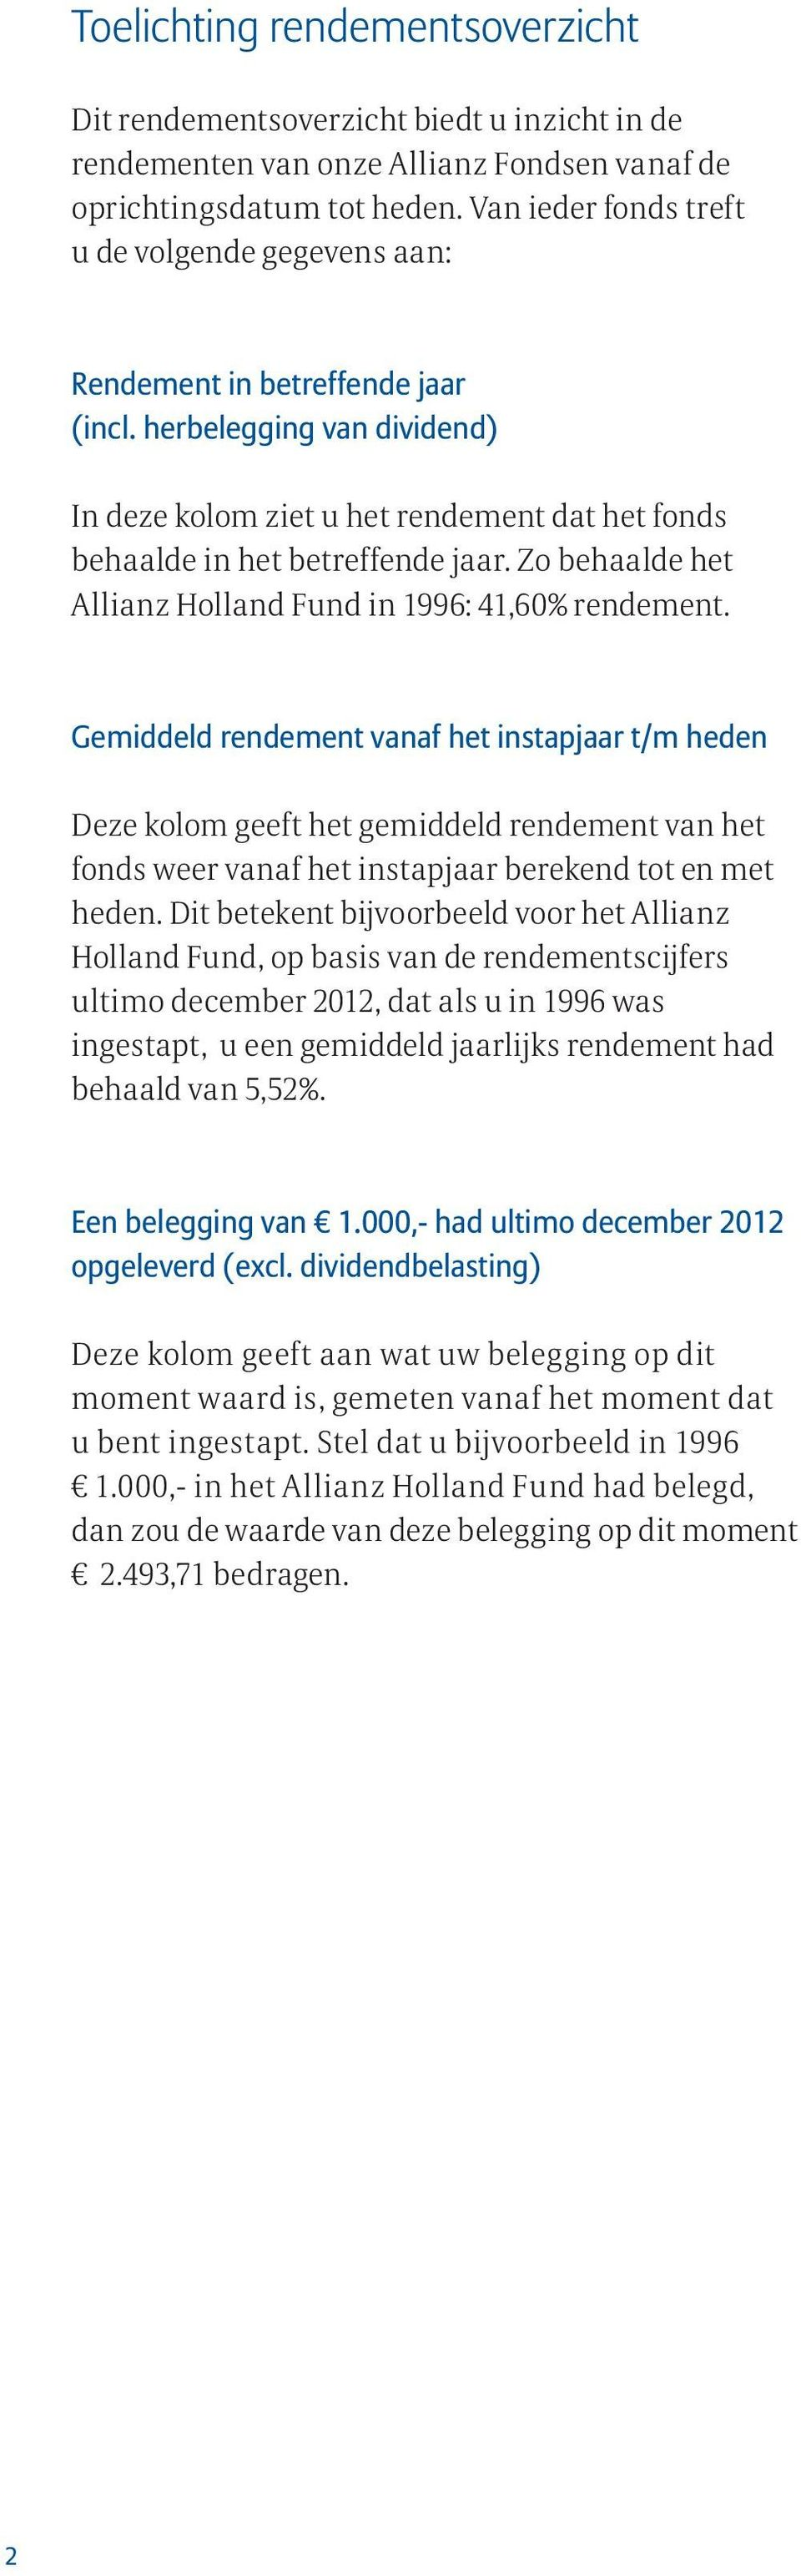 Zo behaalde het Allianz Holland Fund in 1996: 41,60% rendement.